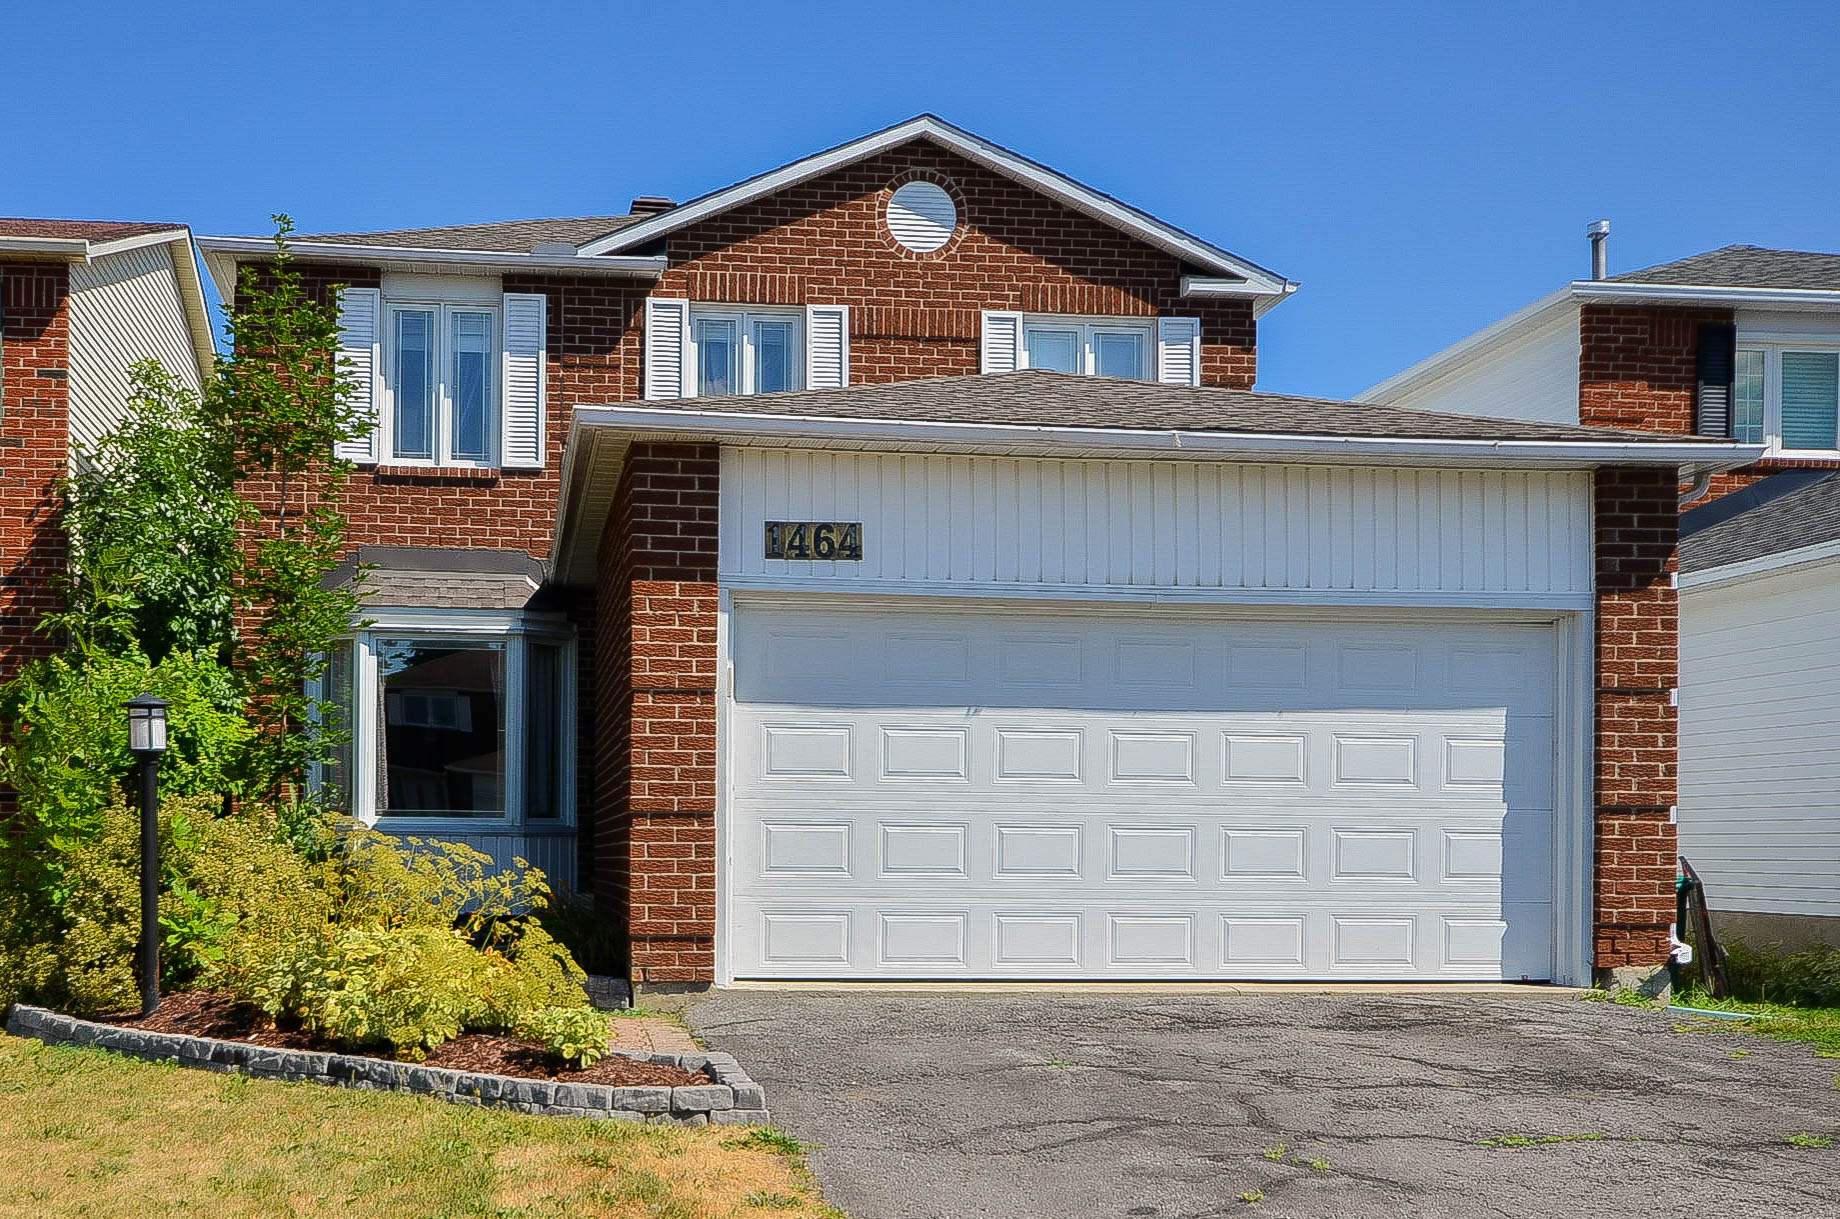 1464 Laurin Cr - Beautiful Backyard Oasis in this 4 Bedroom Home in Orleans area!